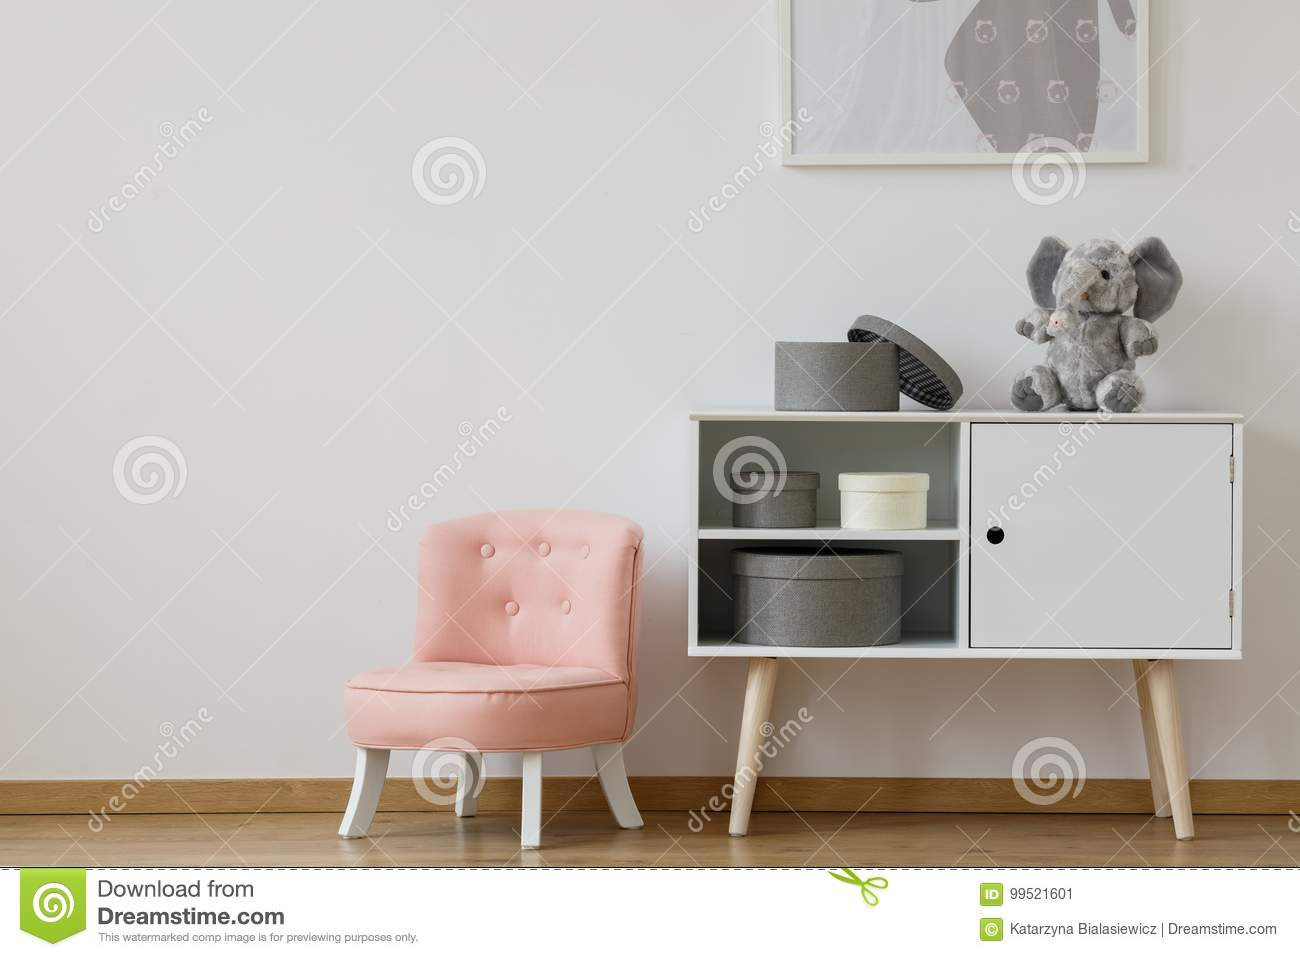 Pink Chair Next To White Shelf Stock Image - Image of pastel ...